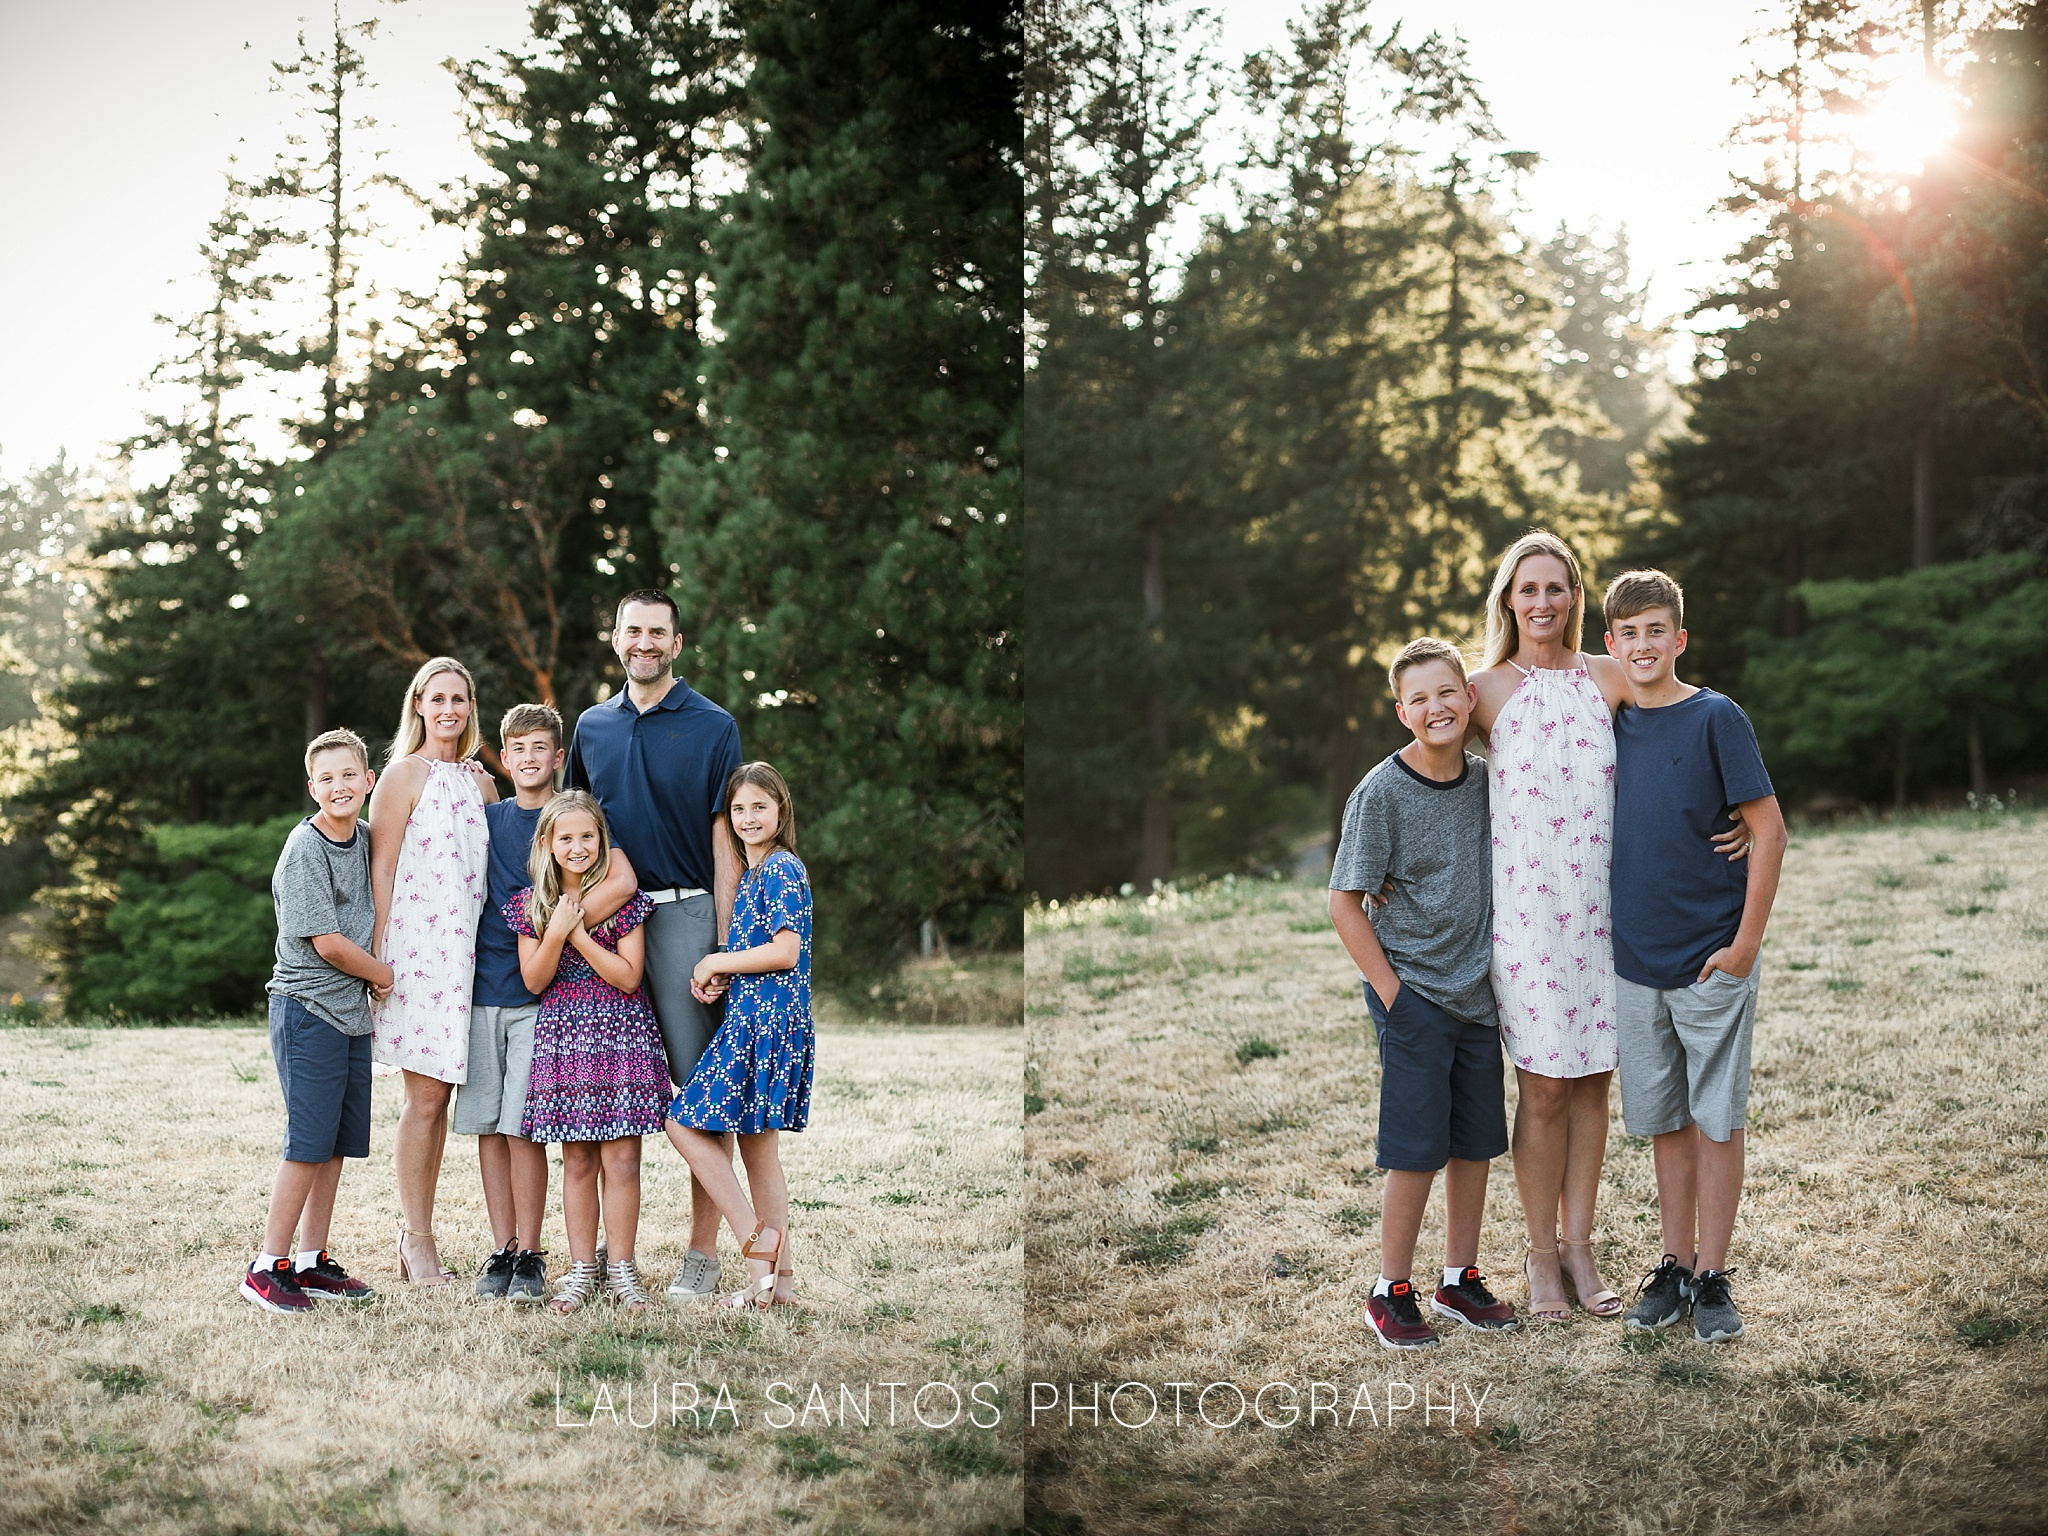 Laura Santos Photography Portland Oregon Family Photographer_0145.jpg